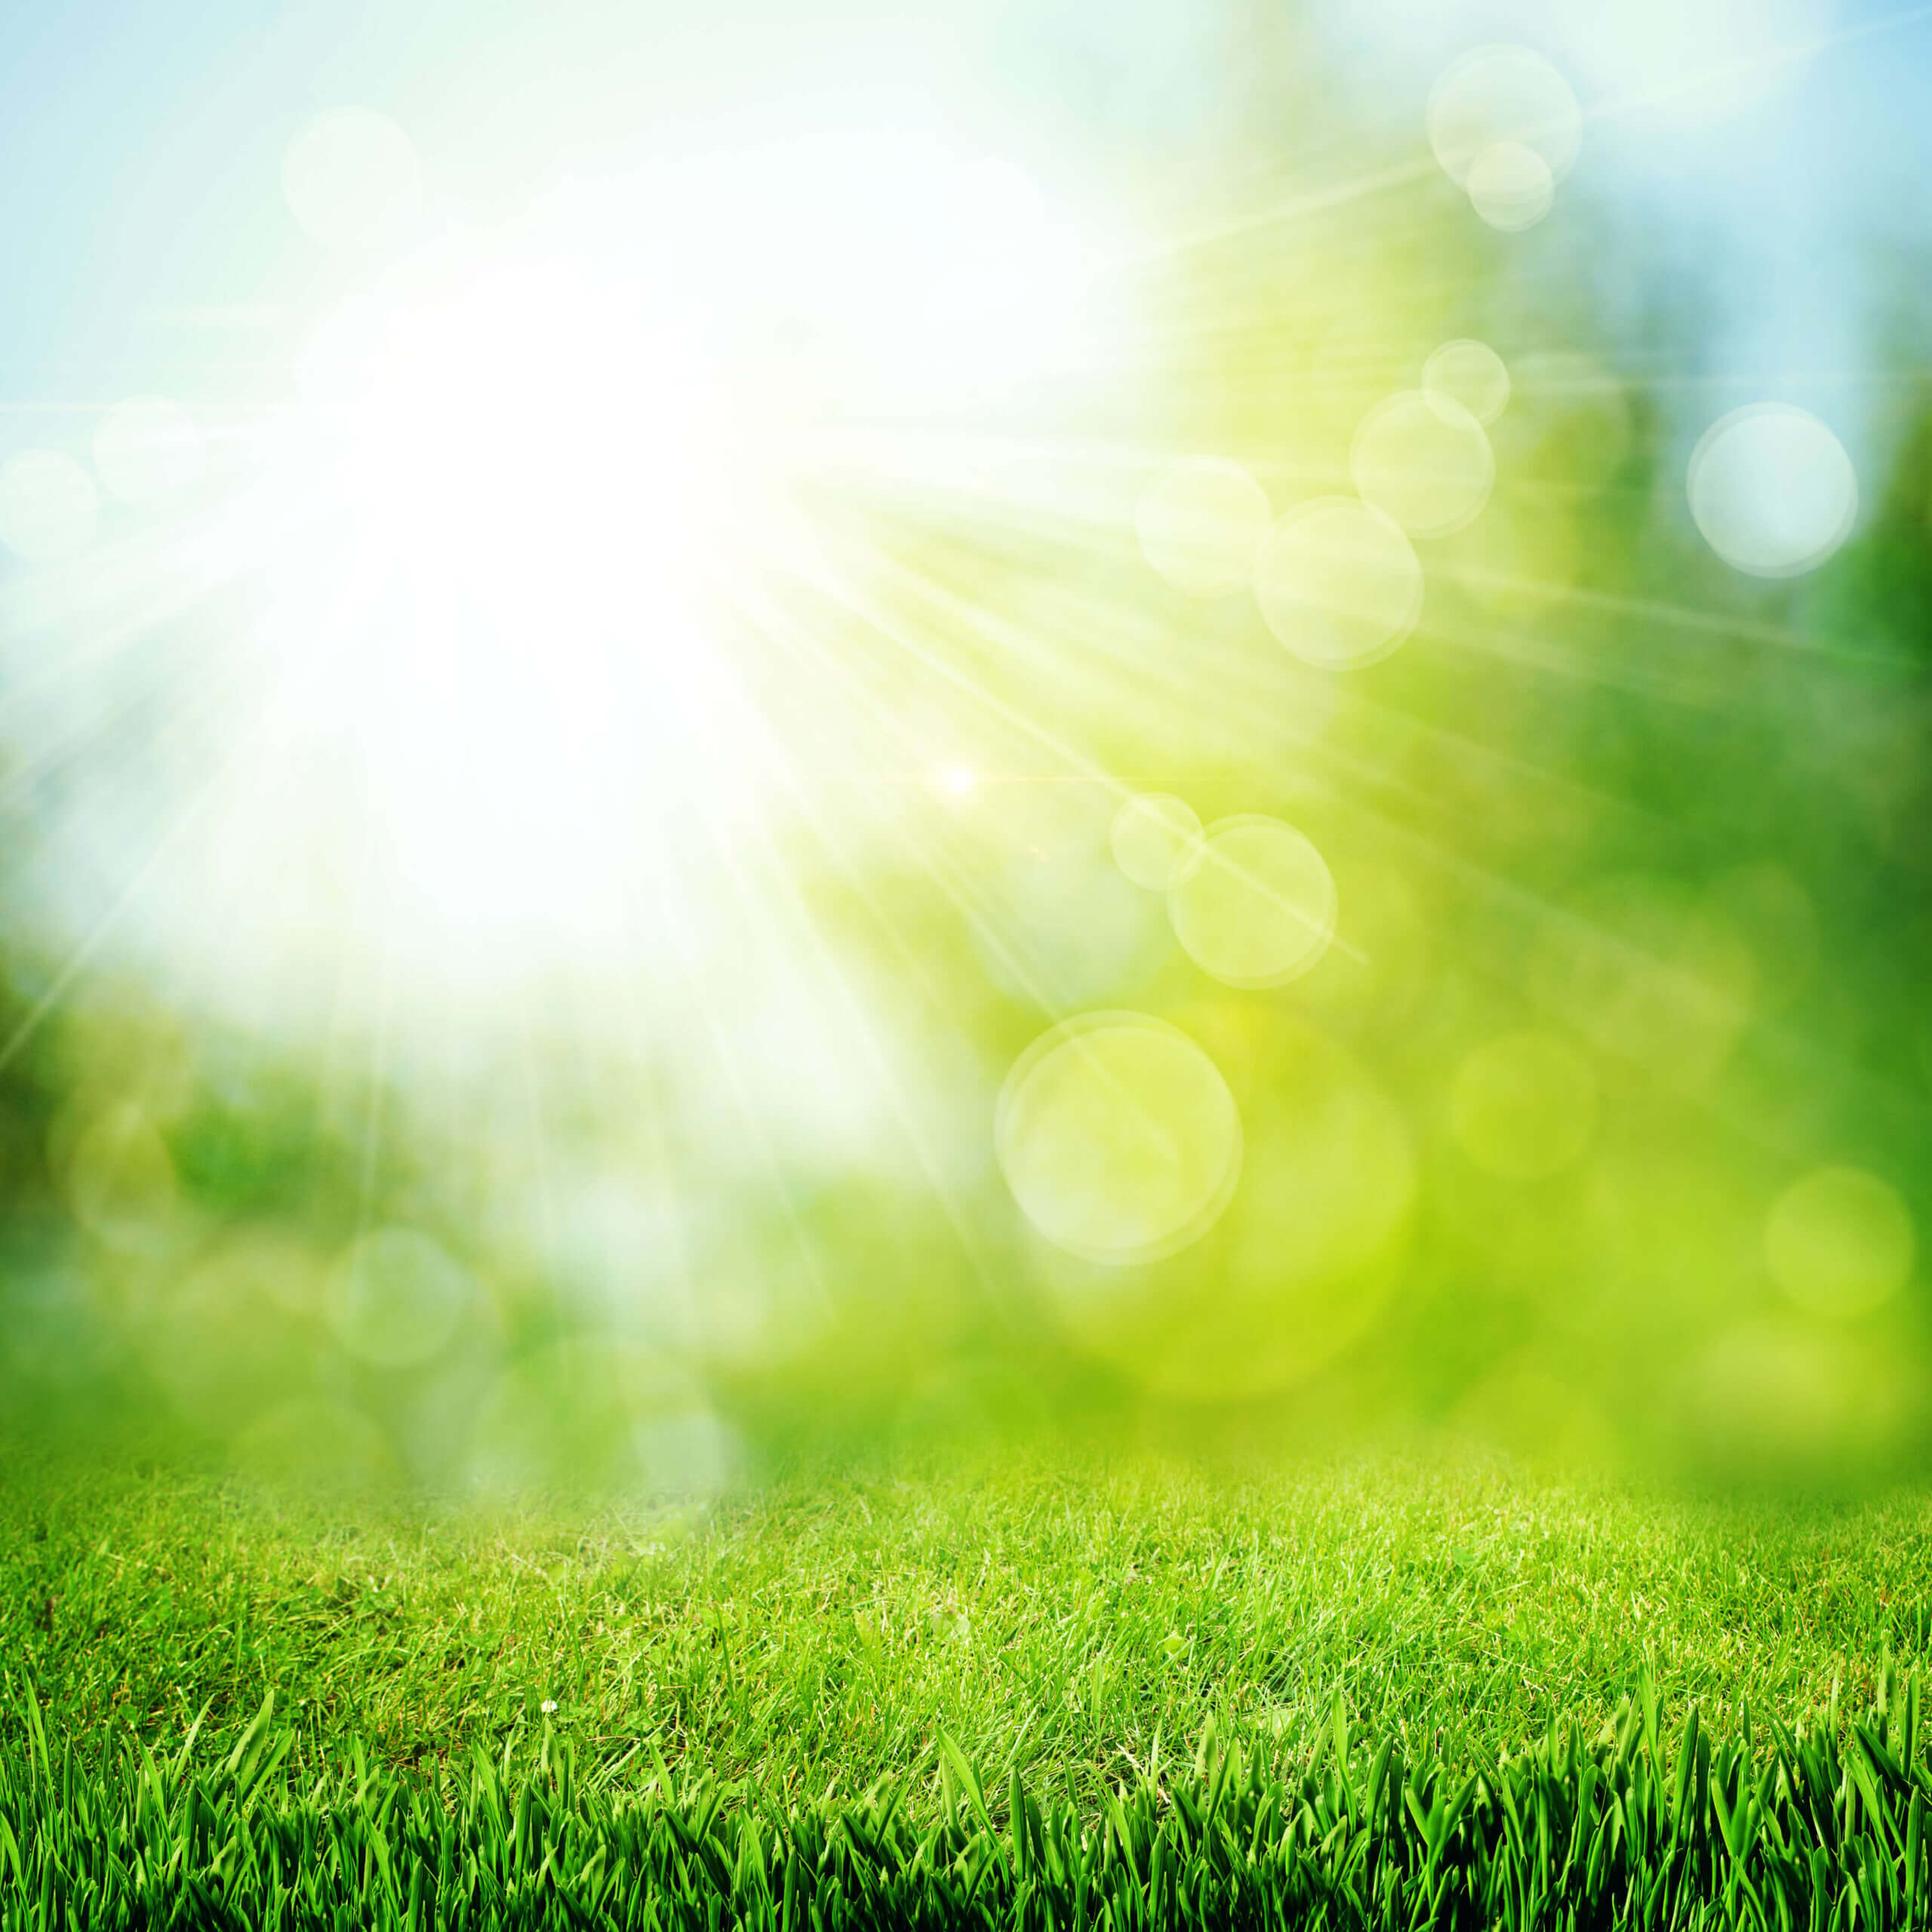 Under the bright sun. Abstract natural backgrounds